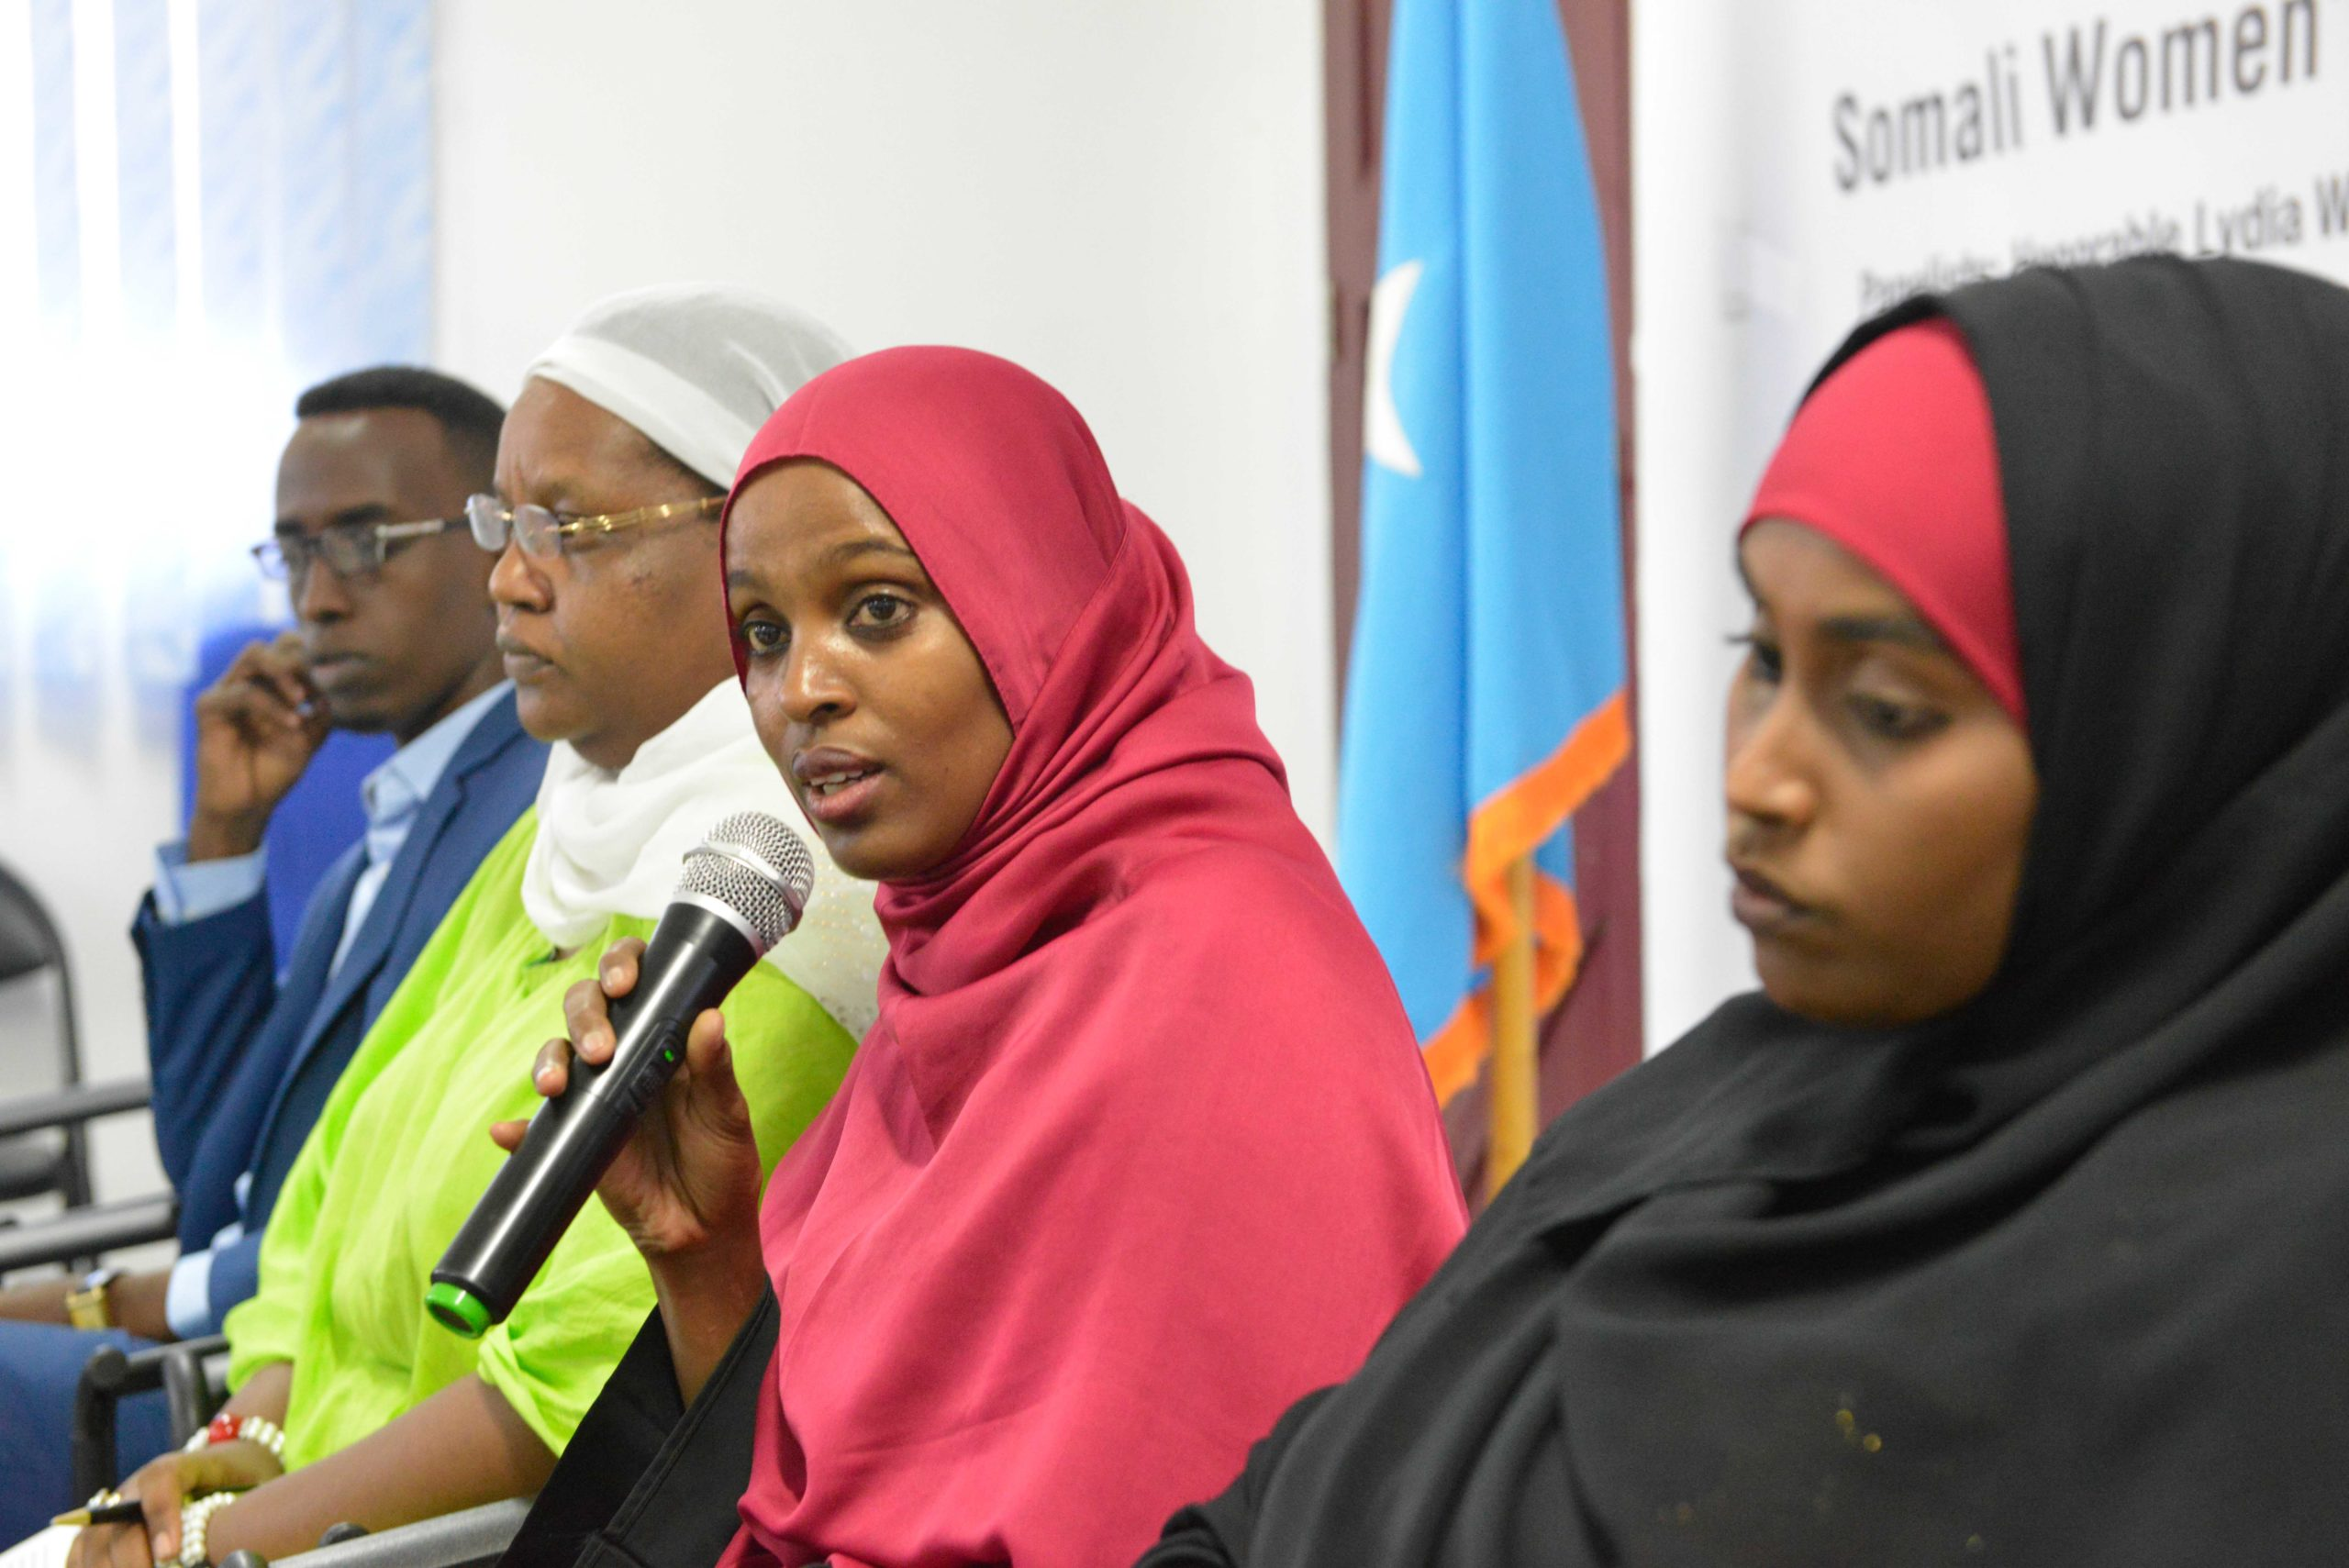 FGM: A Multifarious Practice Deeply Ingrained in Somalia